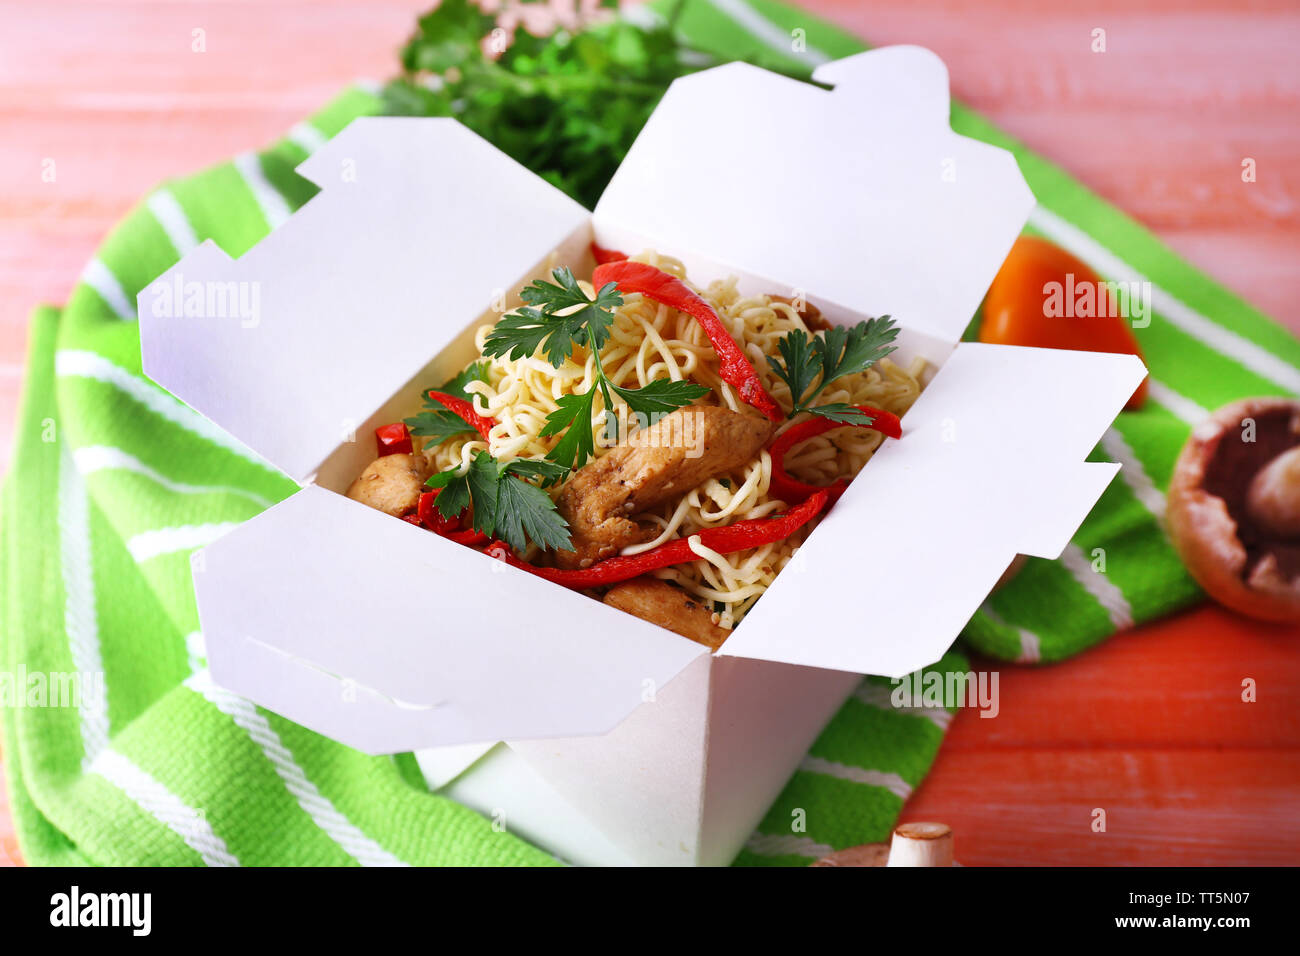 Chinese noodles in takeaway box on green napkin on pink background - Stock Image